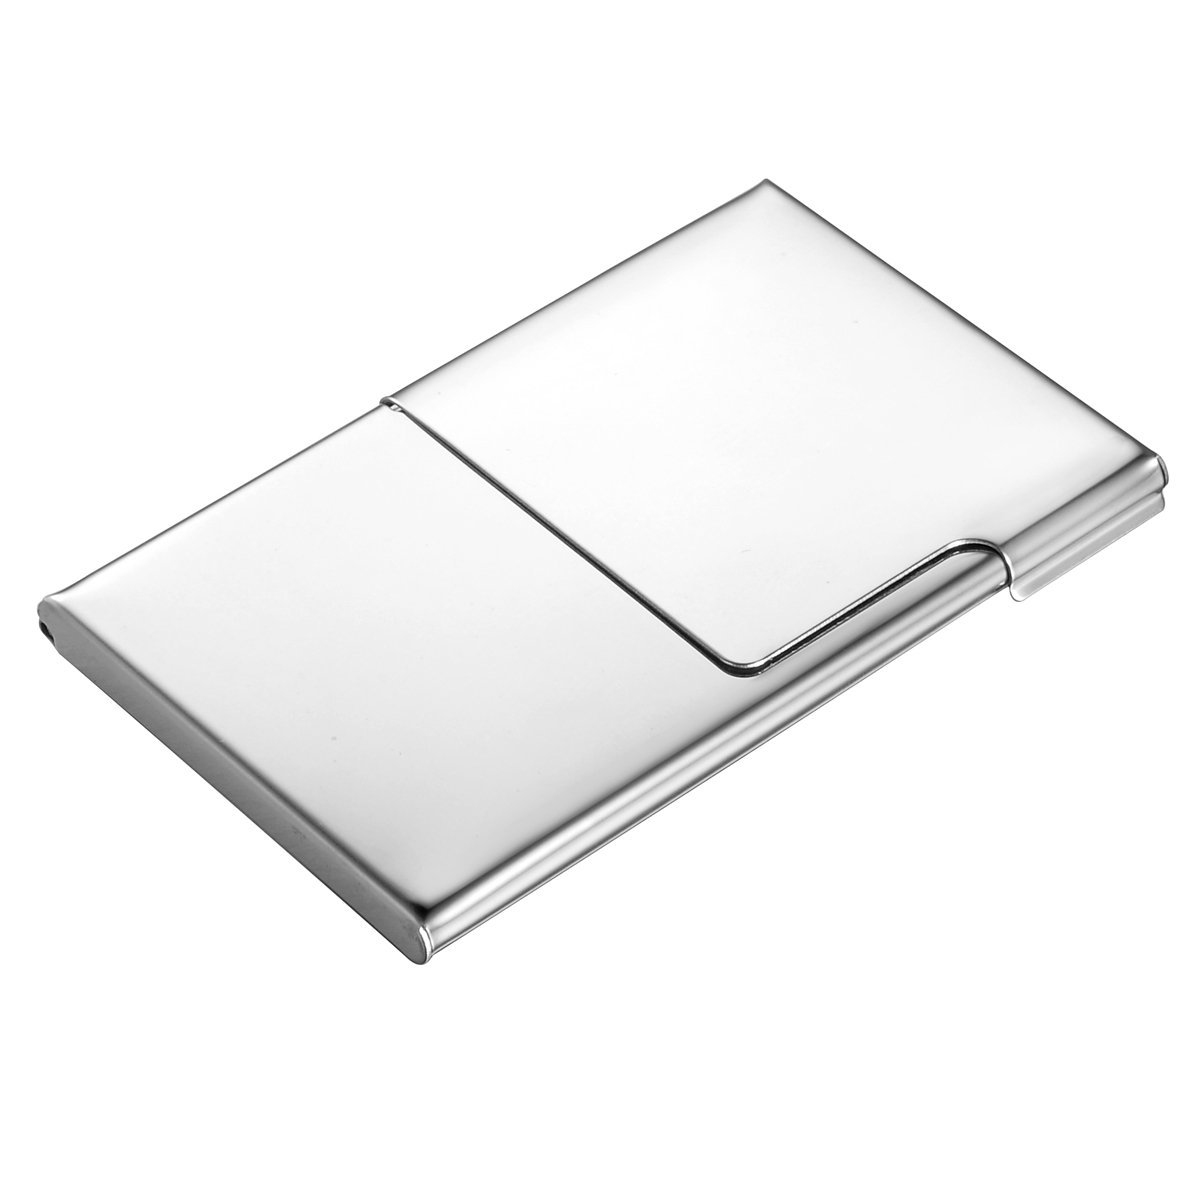 HOUSWEETY Stainless Steel Business Name Card Case Holder Silver Tone HOUSWEETYB100708